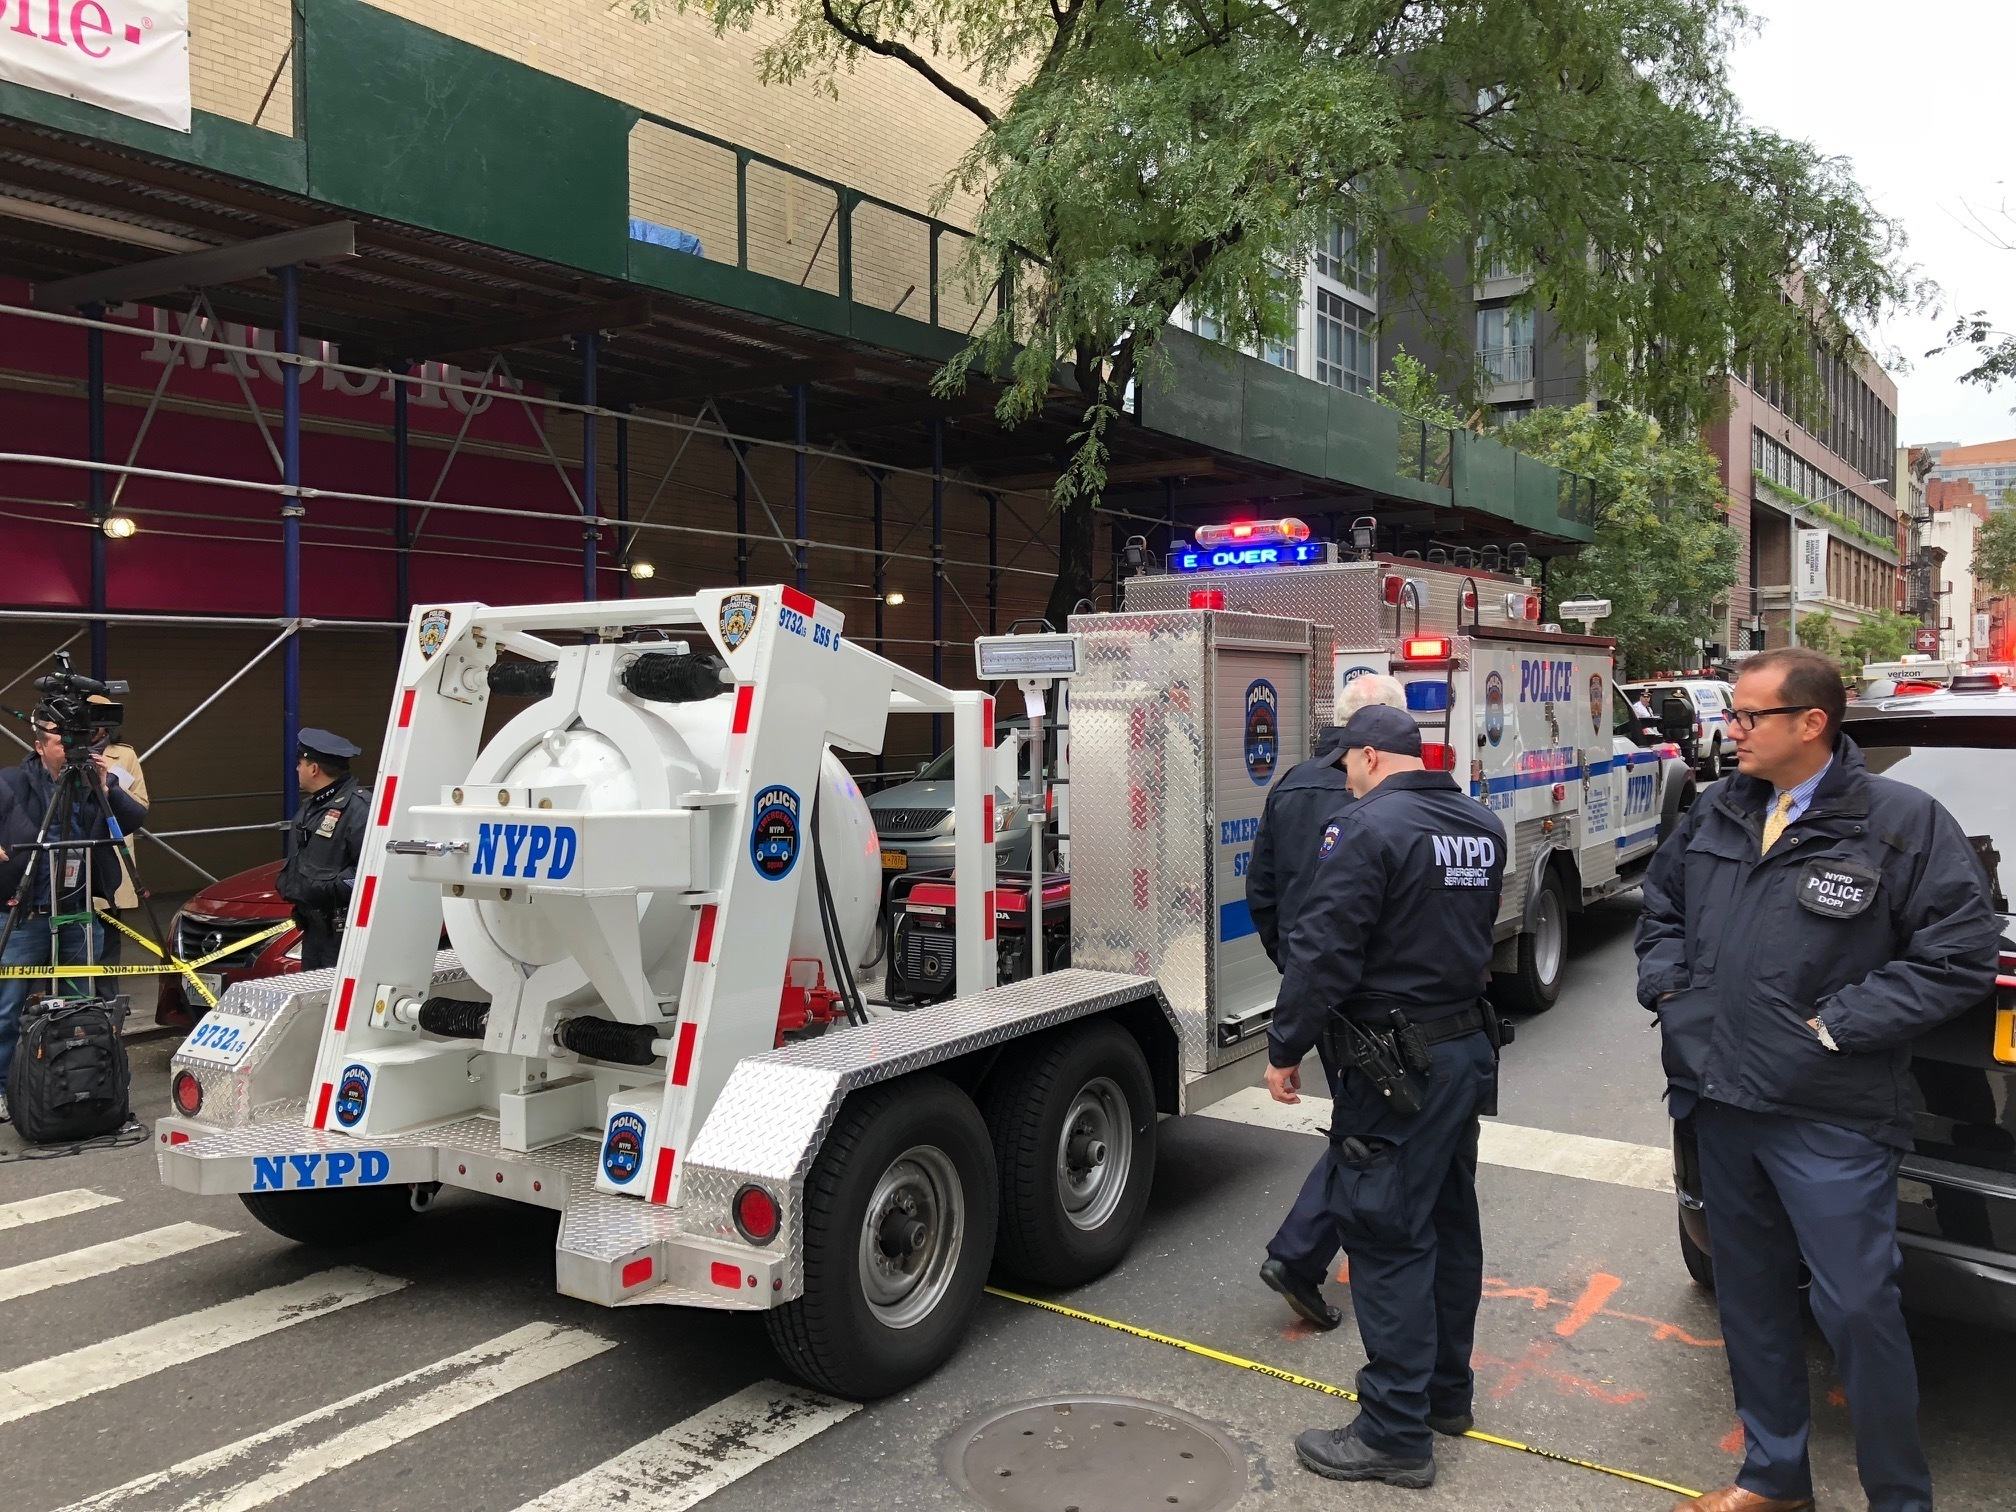 <div class='meta'><div class='origin-logo' data-origin='none'></div><span class='caption-text' data-credit='Mark Lennihan/AP Photo'>NYPD's Total Containment vessel arrives as law enforcement respond to the scene of a suspicious package at a postal facility, Friday, Oct. 26, 2018 in New York.</span></div>